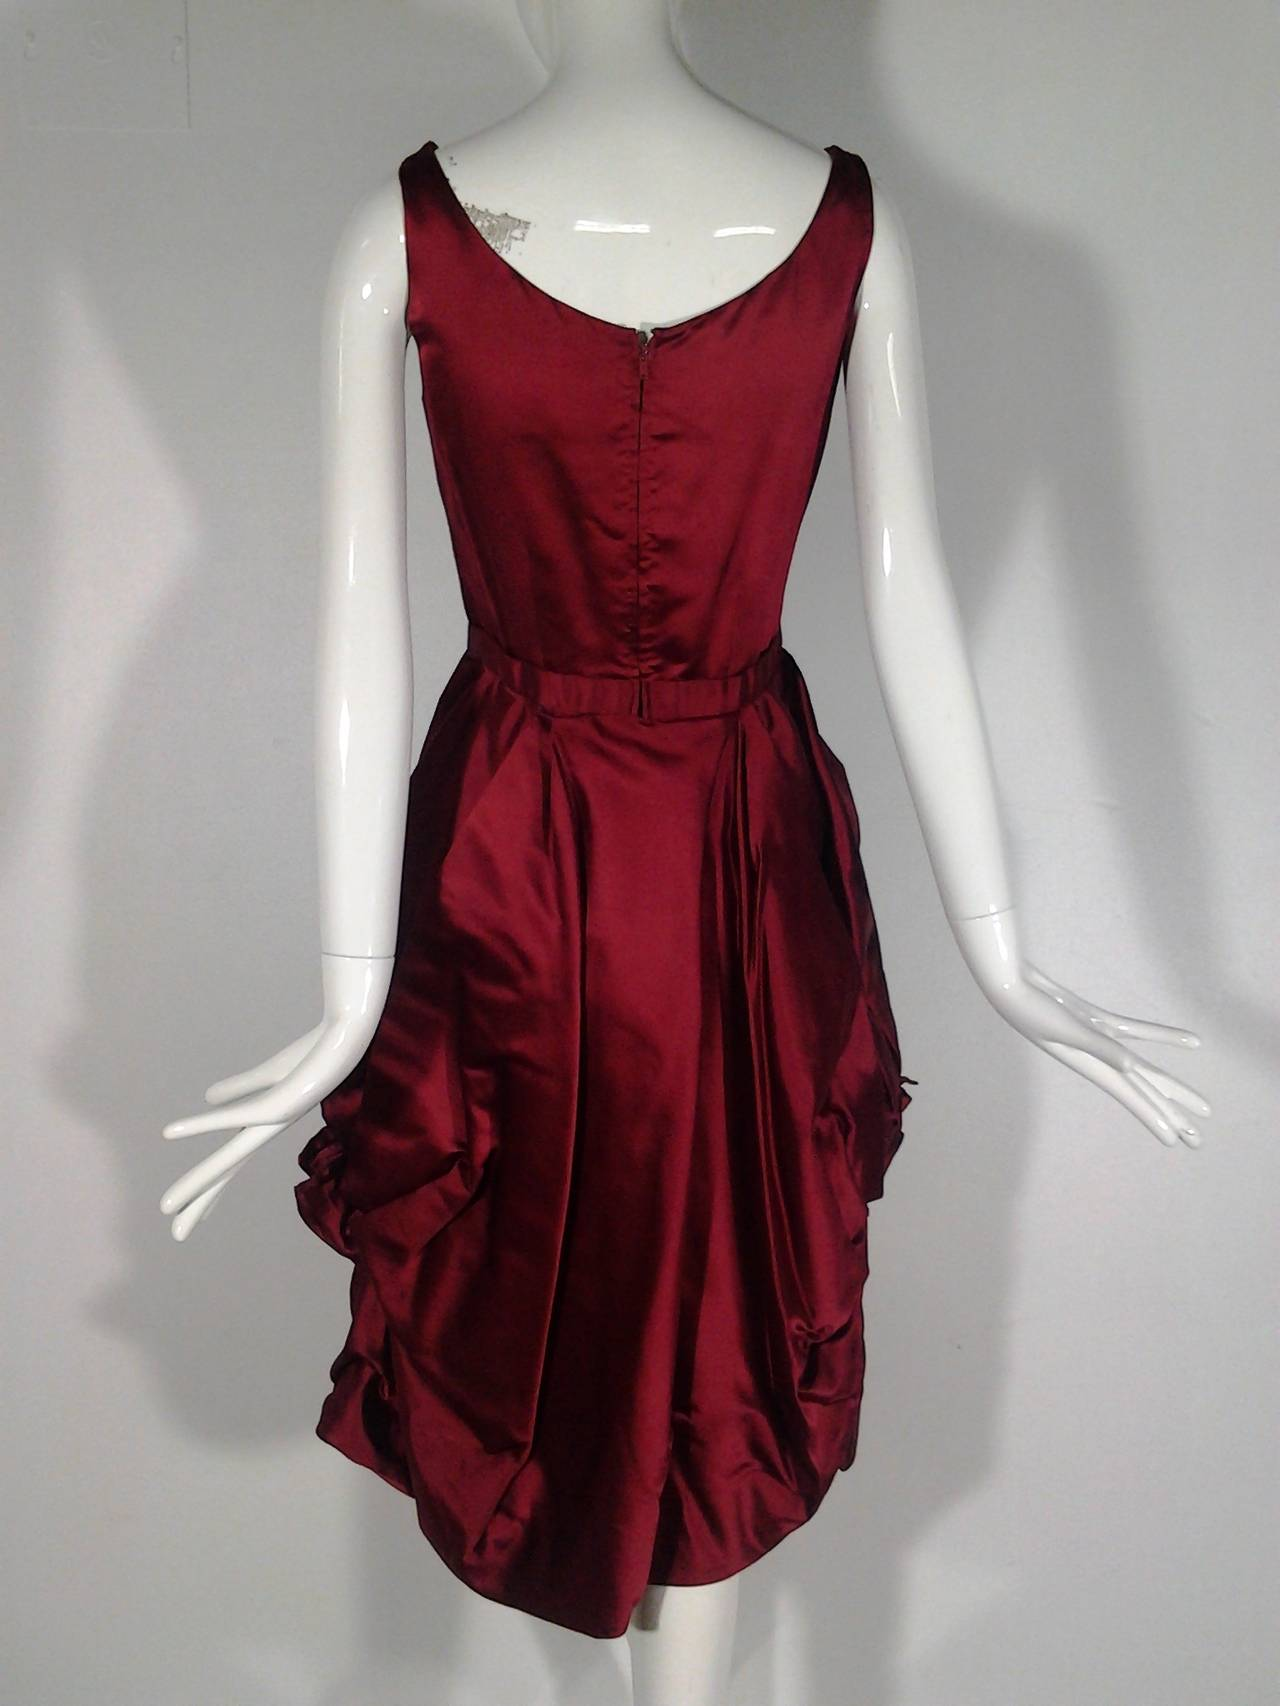 1950s Nan Duskin Red Cocktail Dress Featuring Floral Inspired Draped Skirt 4